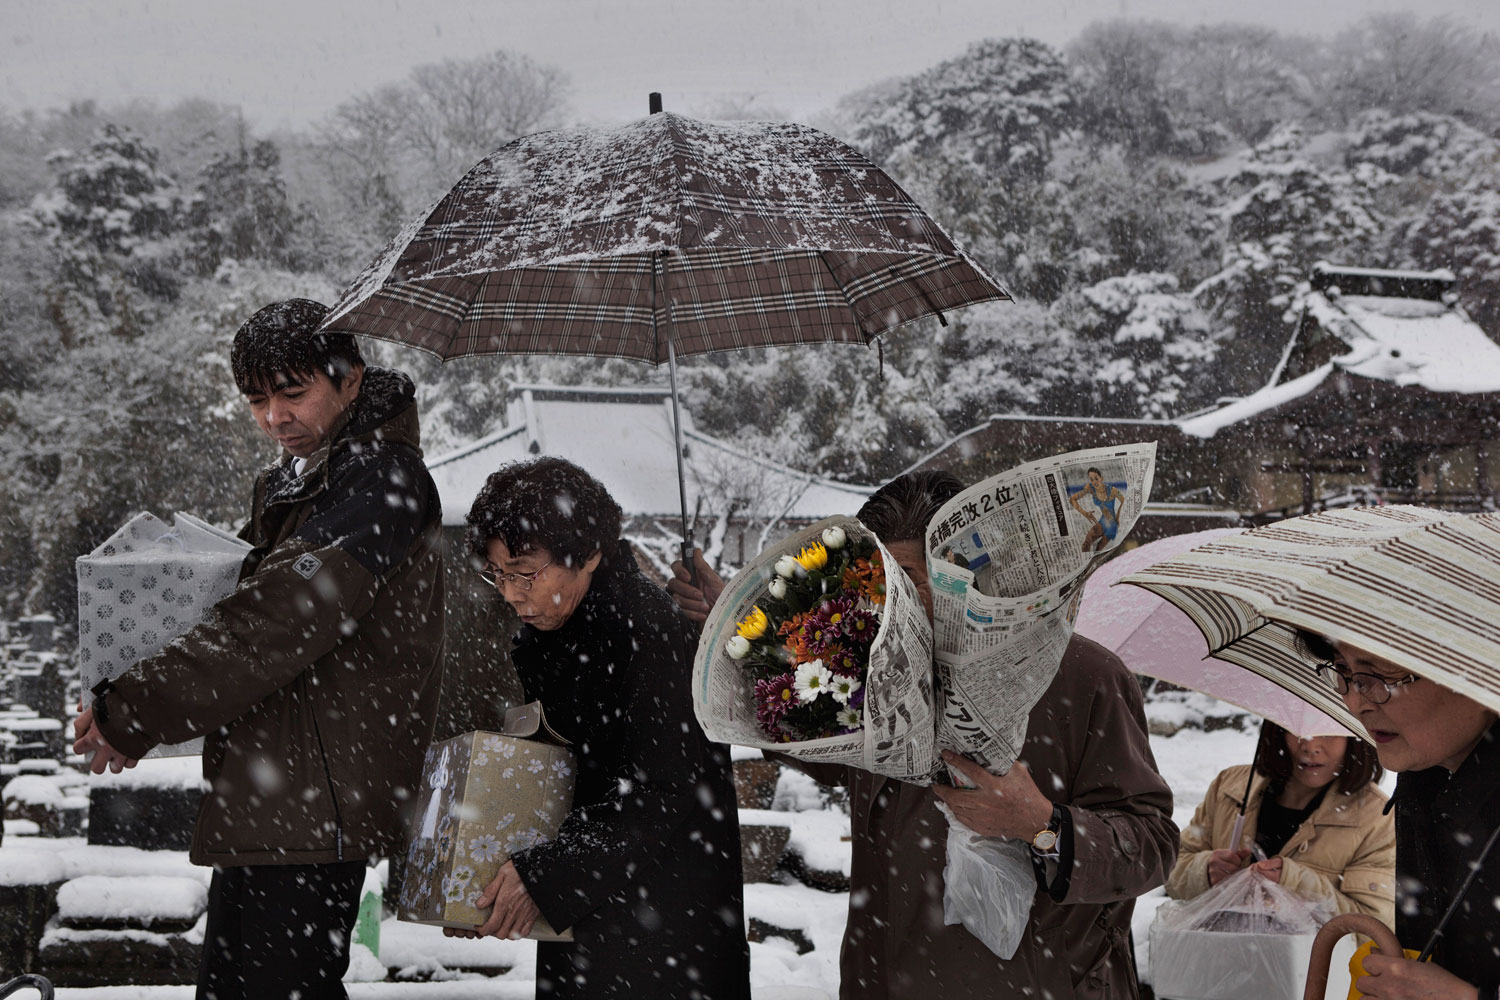 Feb. 25, 2012. Ishinomaki, Japan. A family buries the remains of family members lost almost a year before.